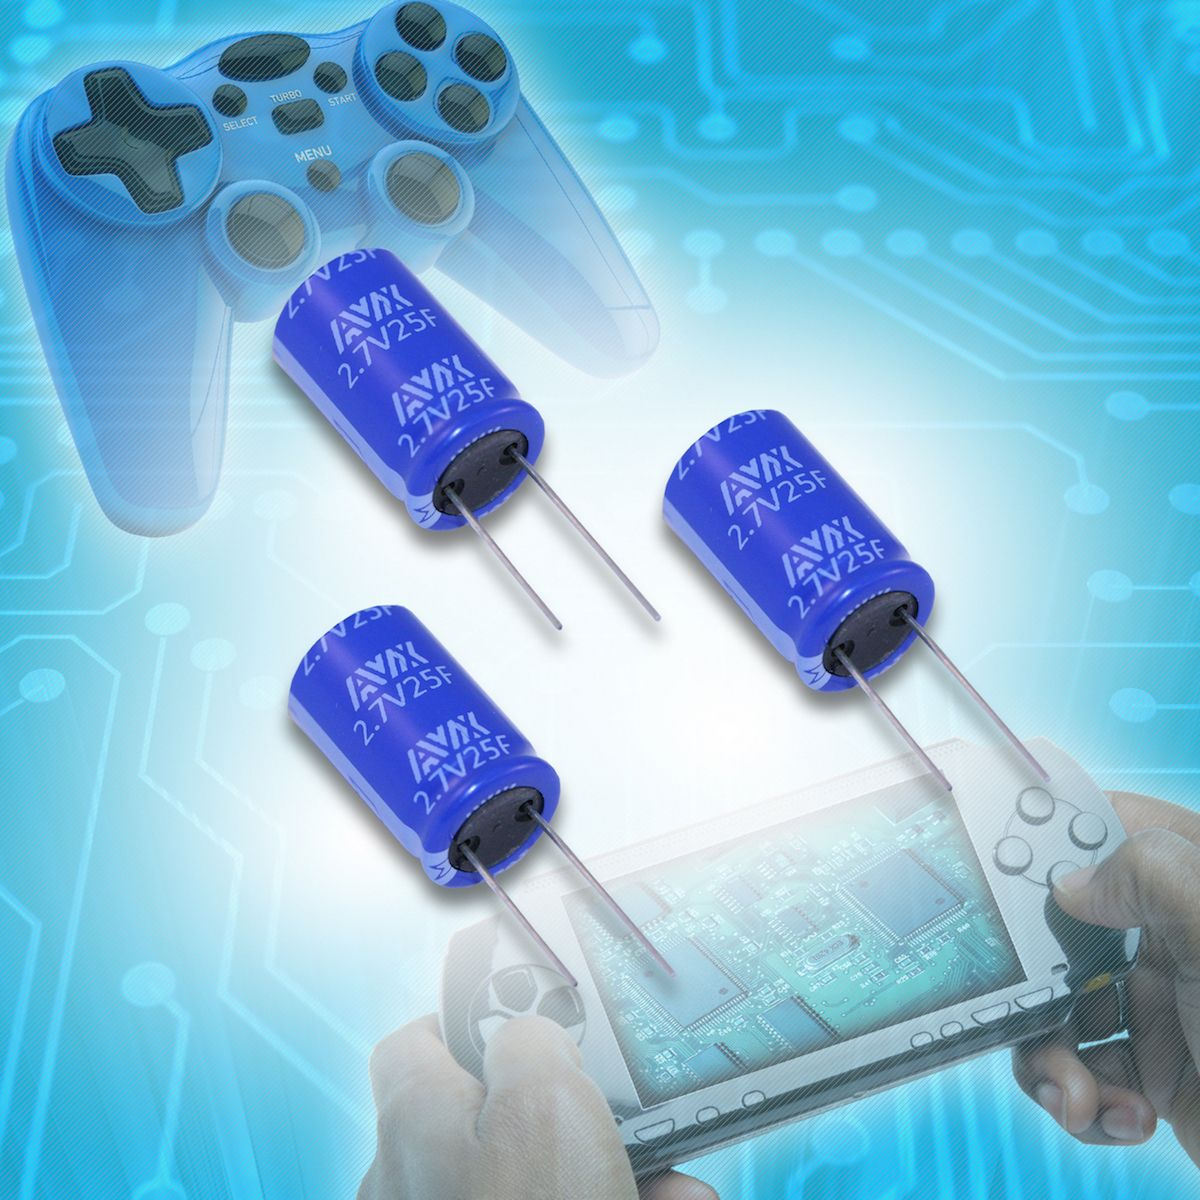 AVX Releases New Cylindrical Supercapacitor Series With